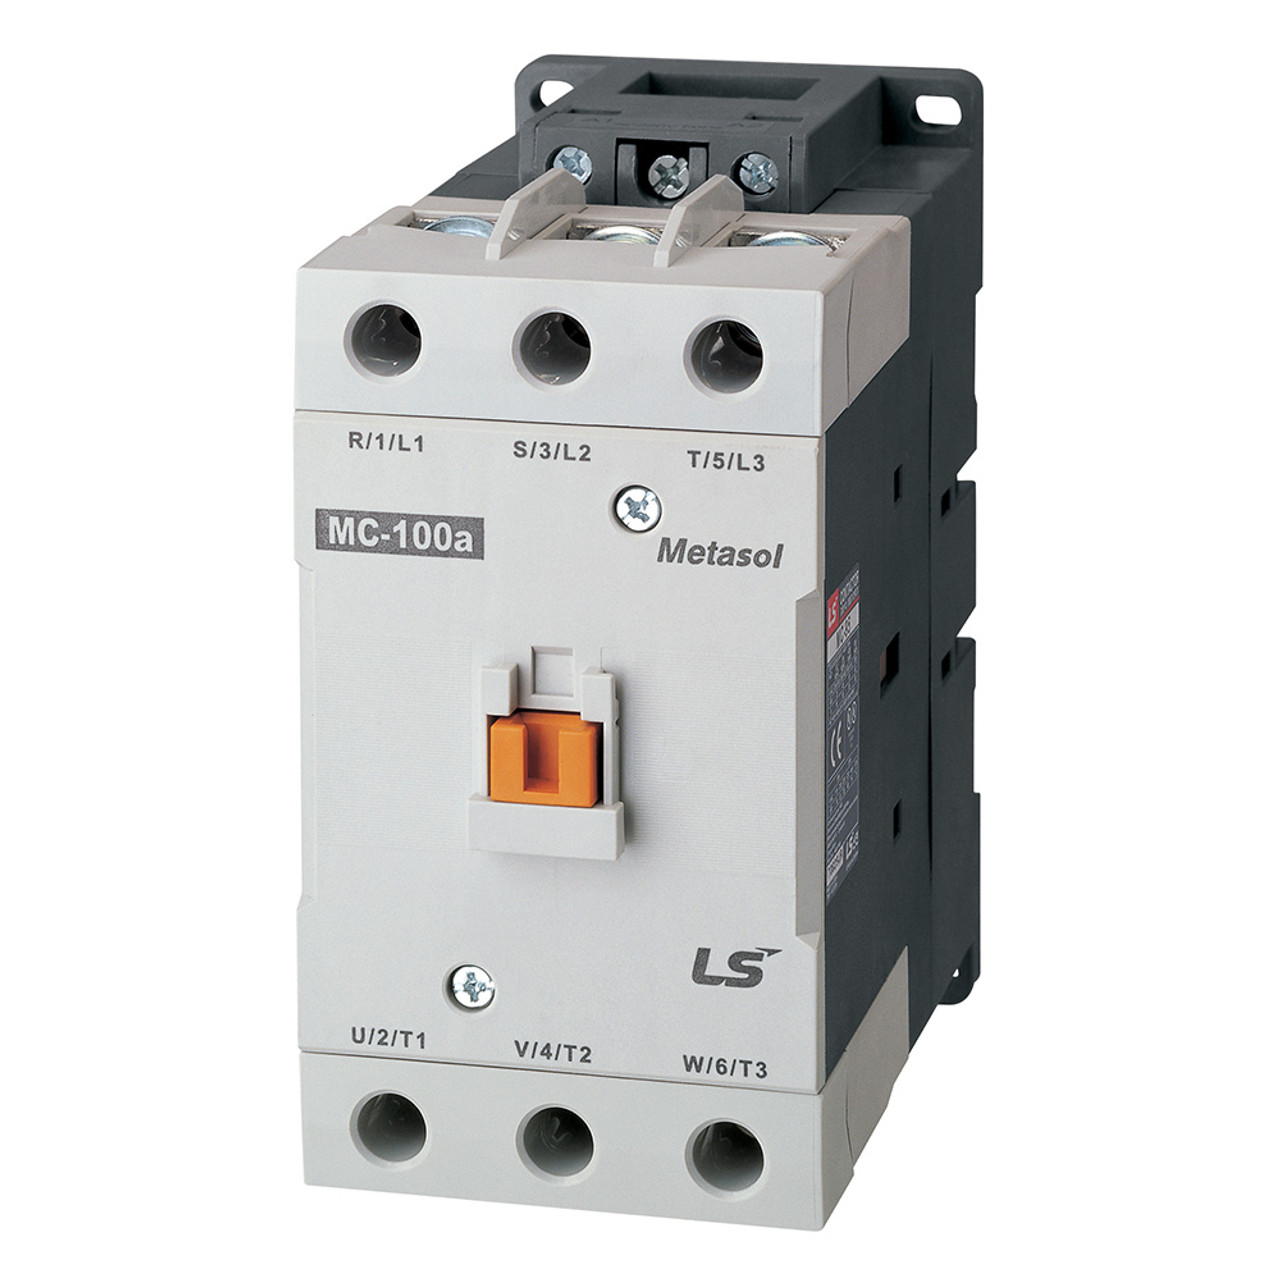 hight resolution of lsis mc 100a metasol series magnetic contactor ac24v 50 60hz screw 2a2b